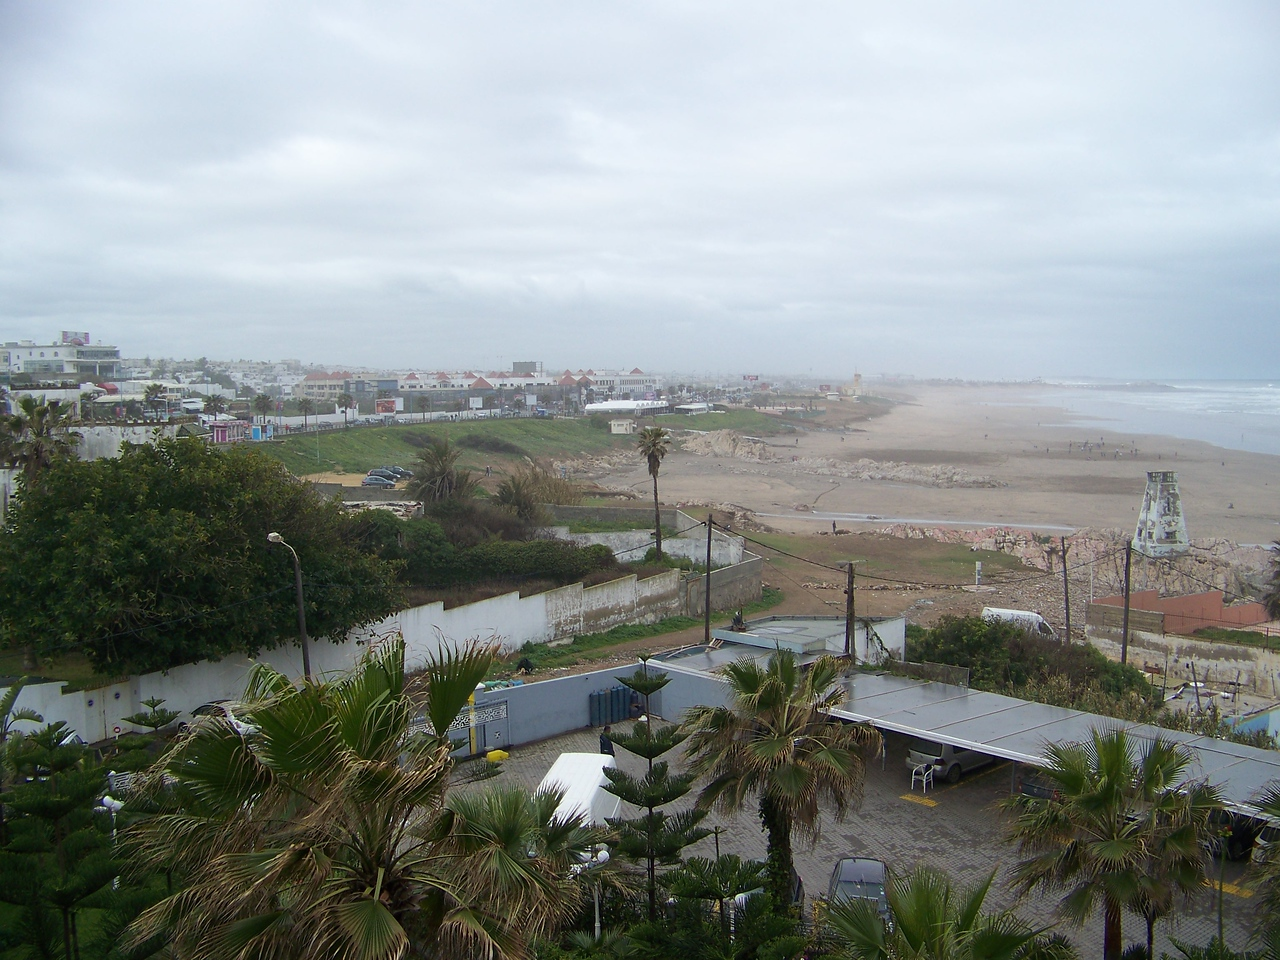 0001 - View of Beach and Atlantic Ocean from Room at Le Grand Bleu Val D Anfa Hotel - Casablanca Morocco.JPG